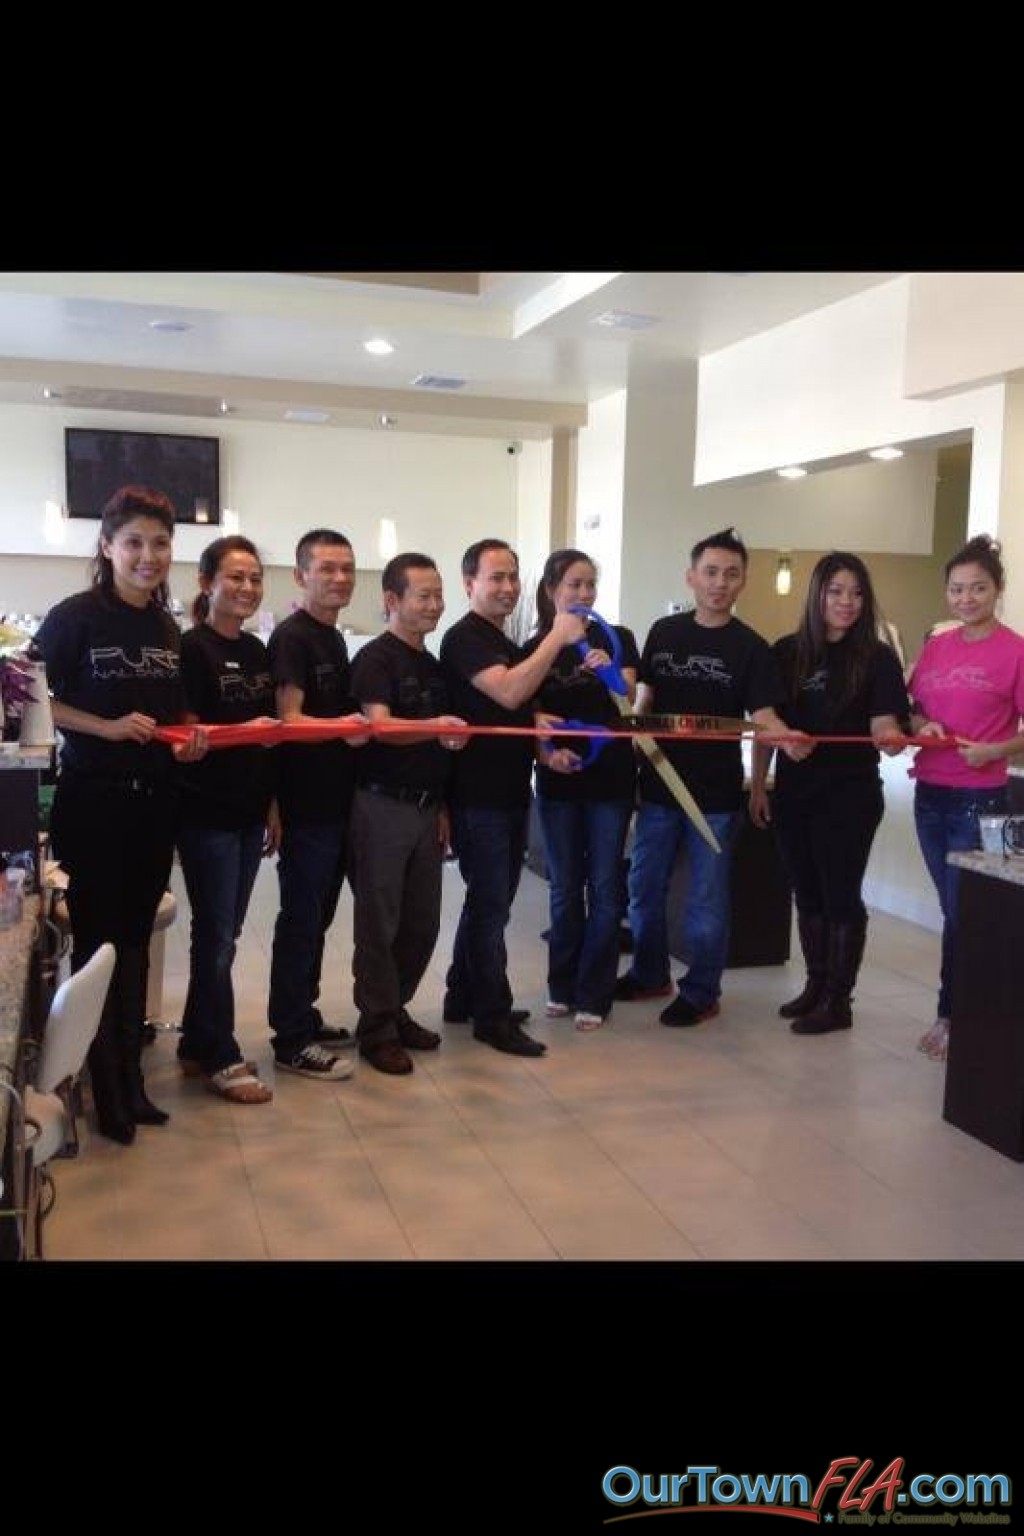 Grand opening for pure bar nail spa in their wesley chapel for Jj fish wesley chapel